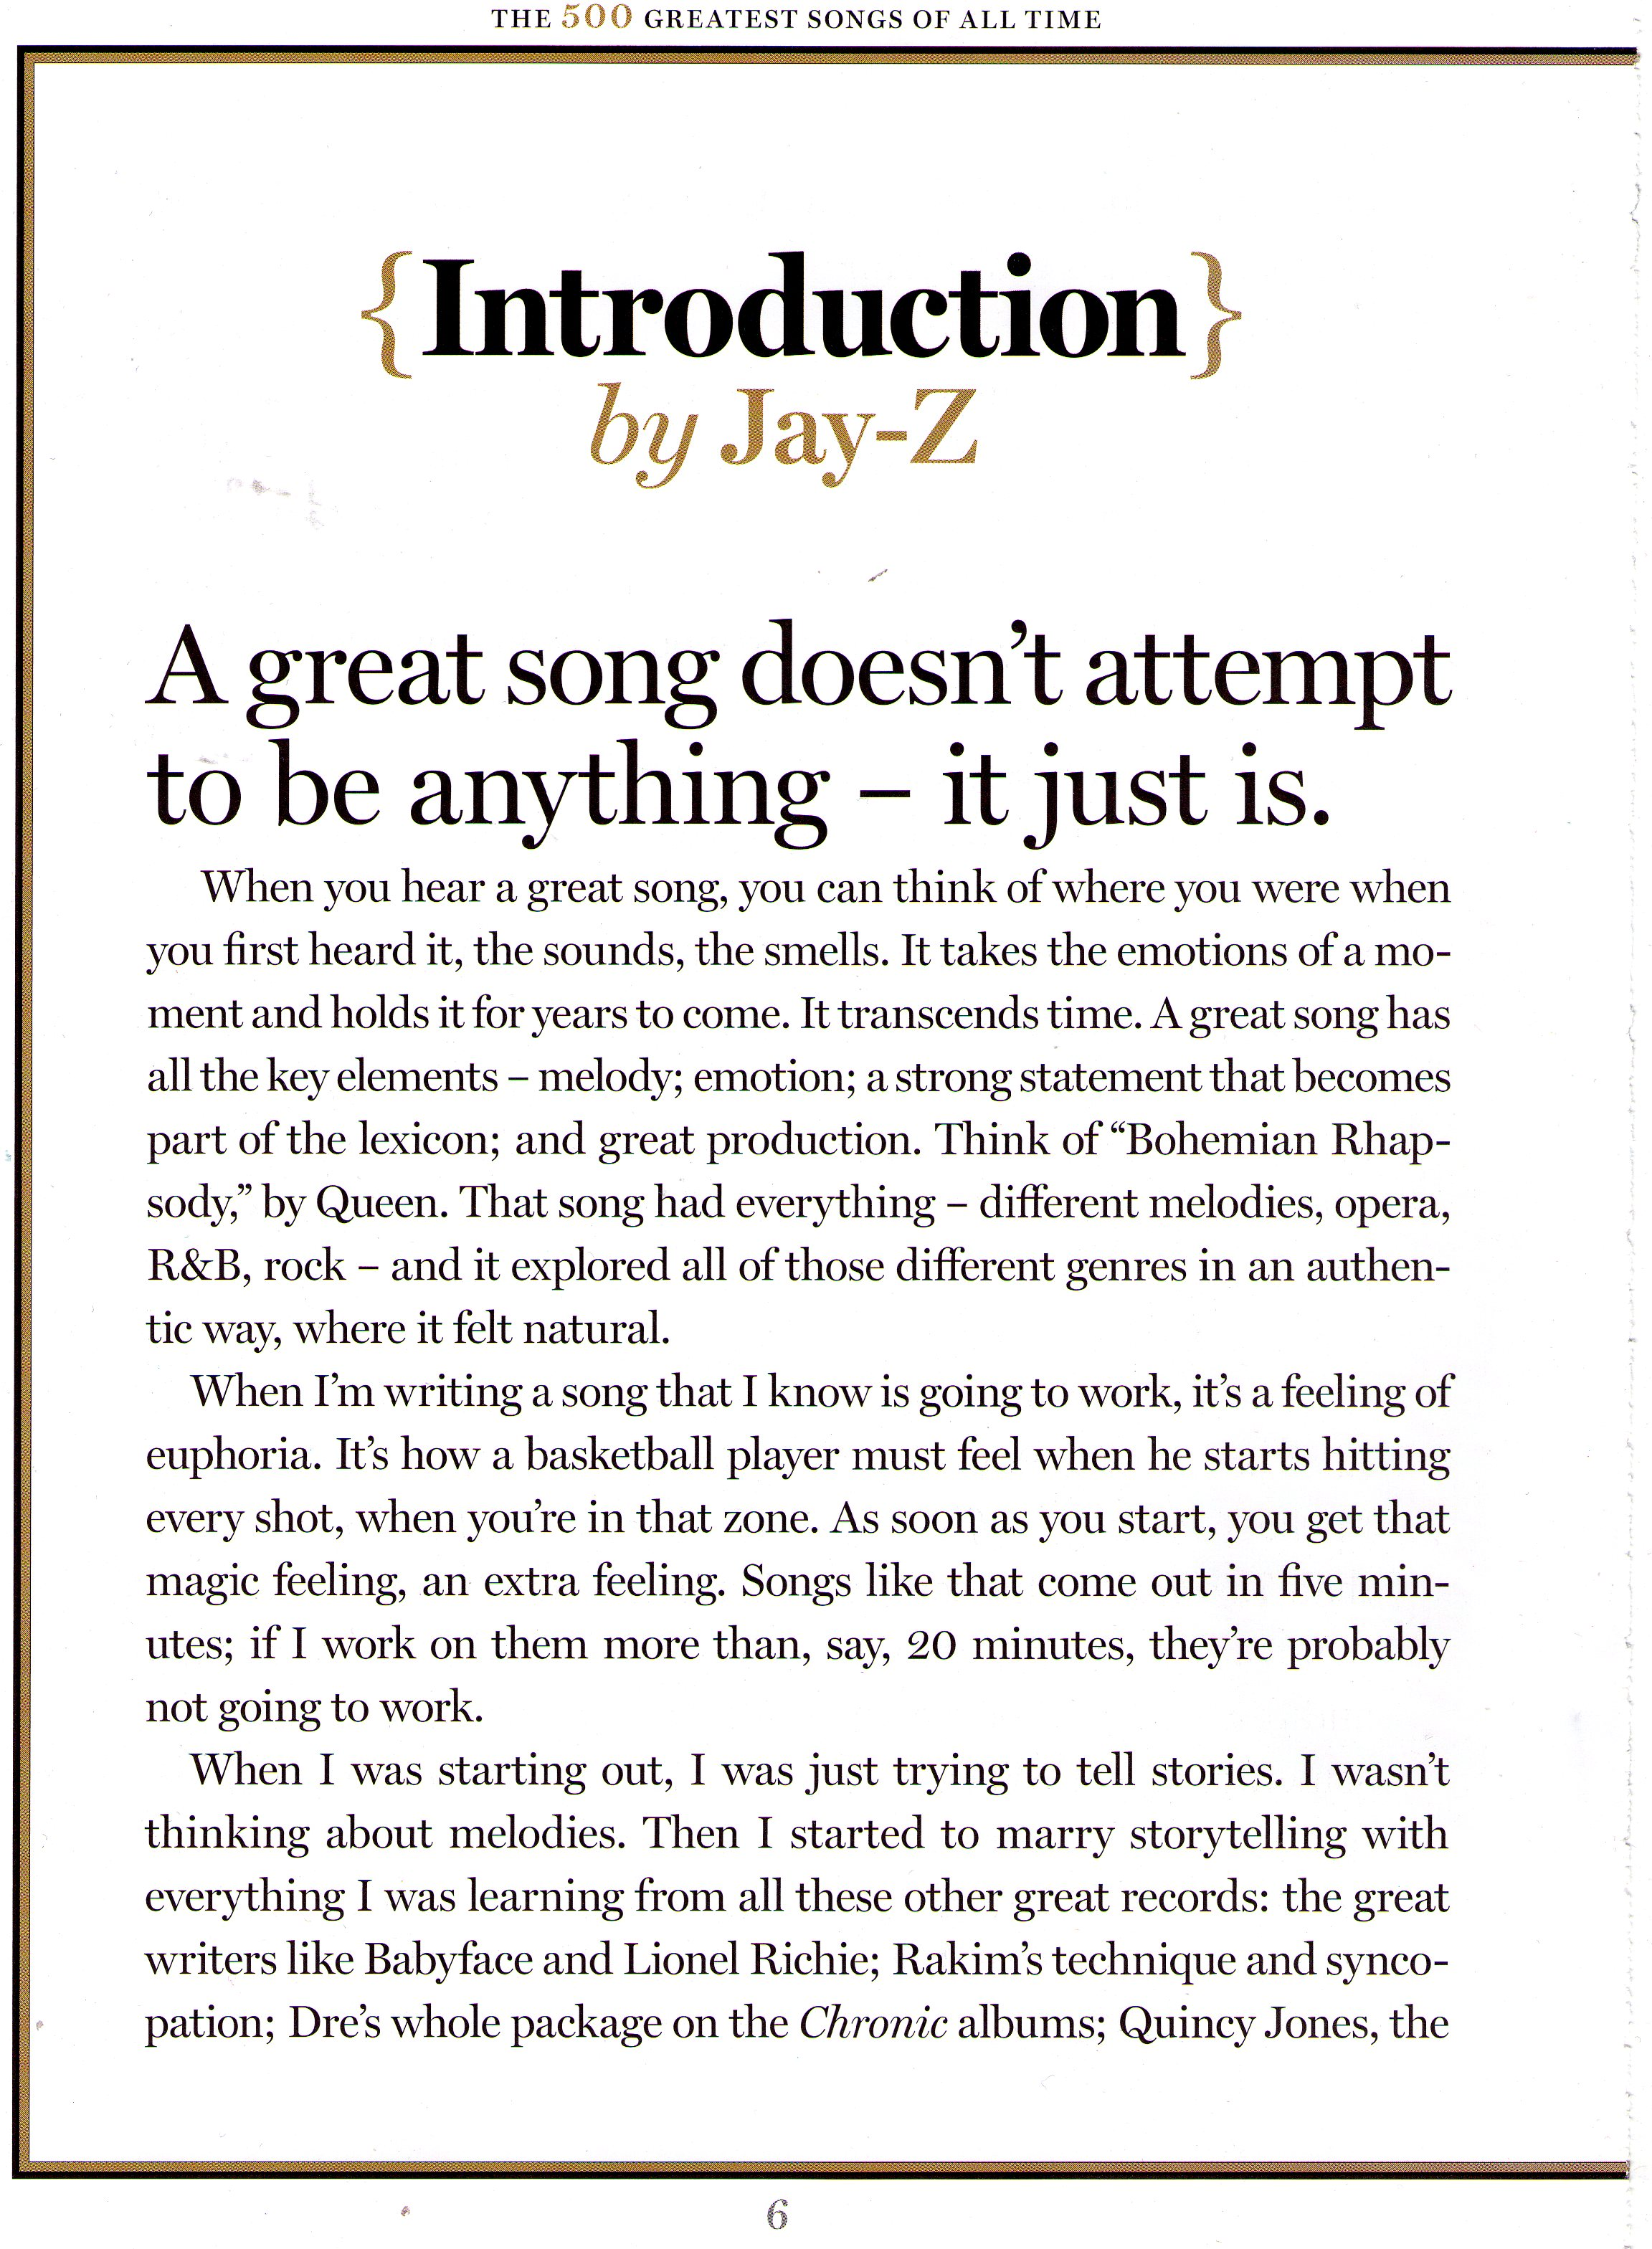 Jay z rolling stone 500 greatest songs intro rap radar for malvernweather Images